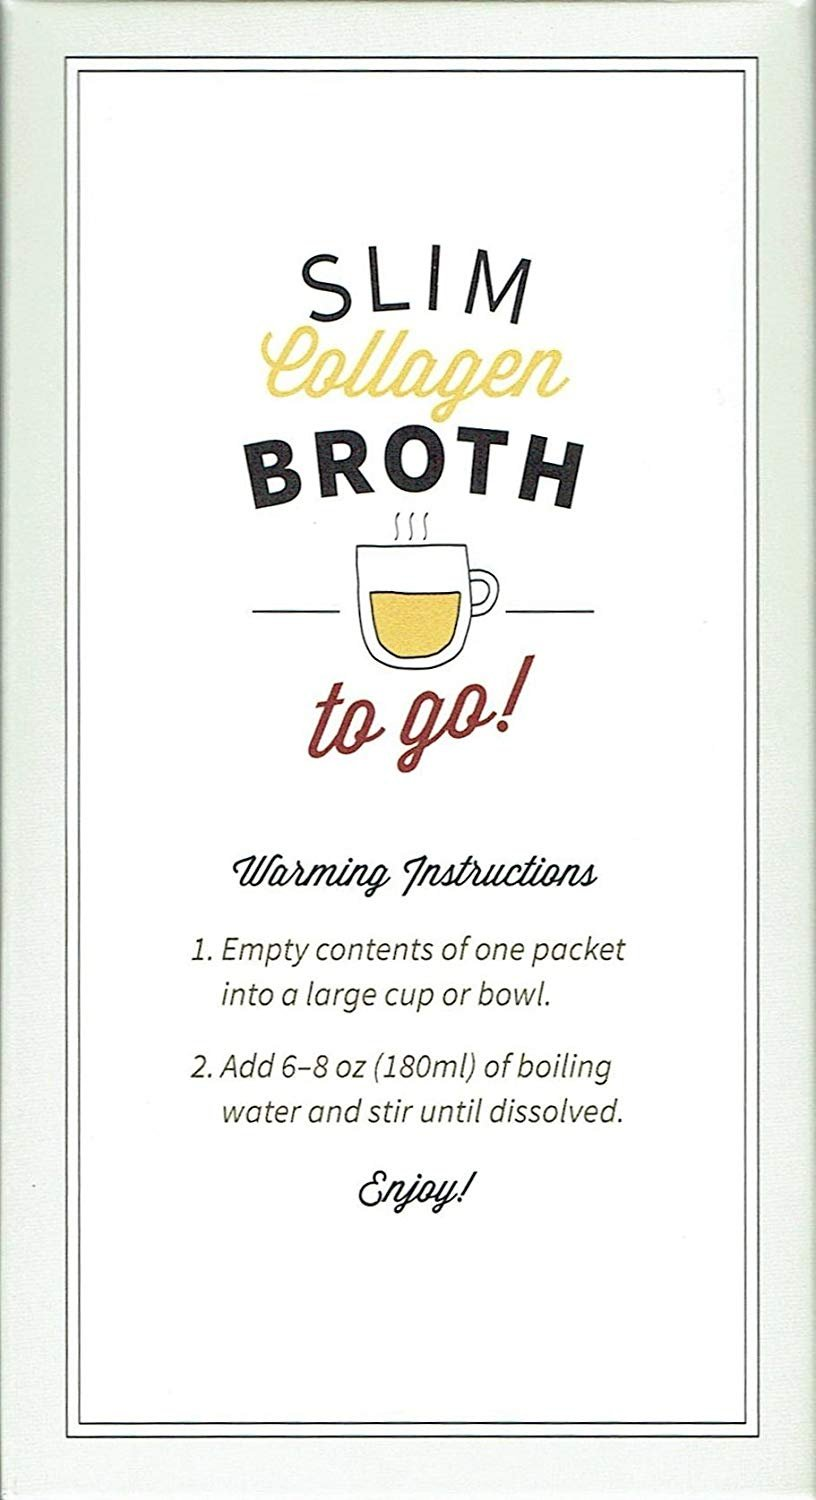 Bone Broth Collagen To Go Packets: (7 servings per box) from Bone Broth Expert Dr. Kellyann | 100% Grass-Fed Collagen | Daily Serving of Collagen by Dr. Kellyann (Image #5)